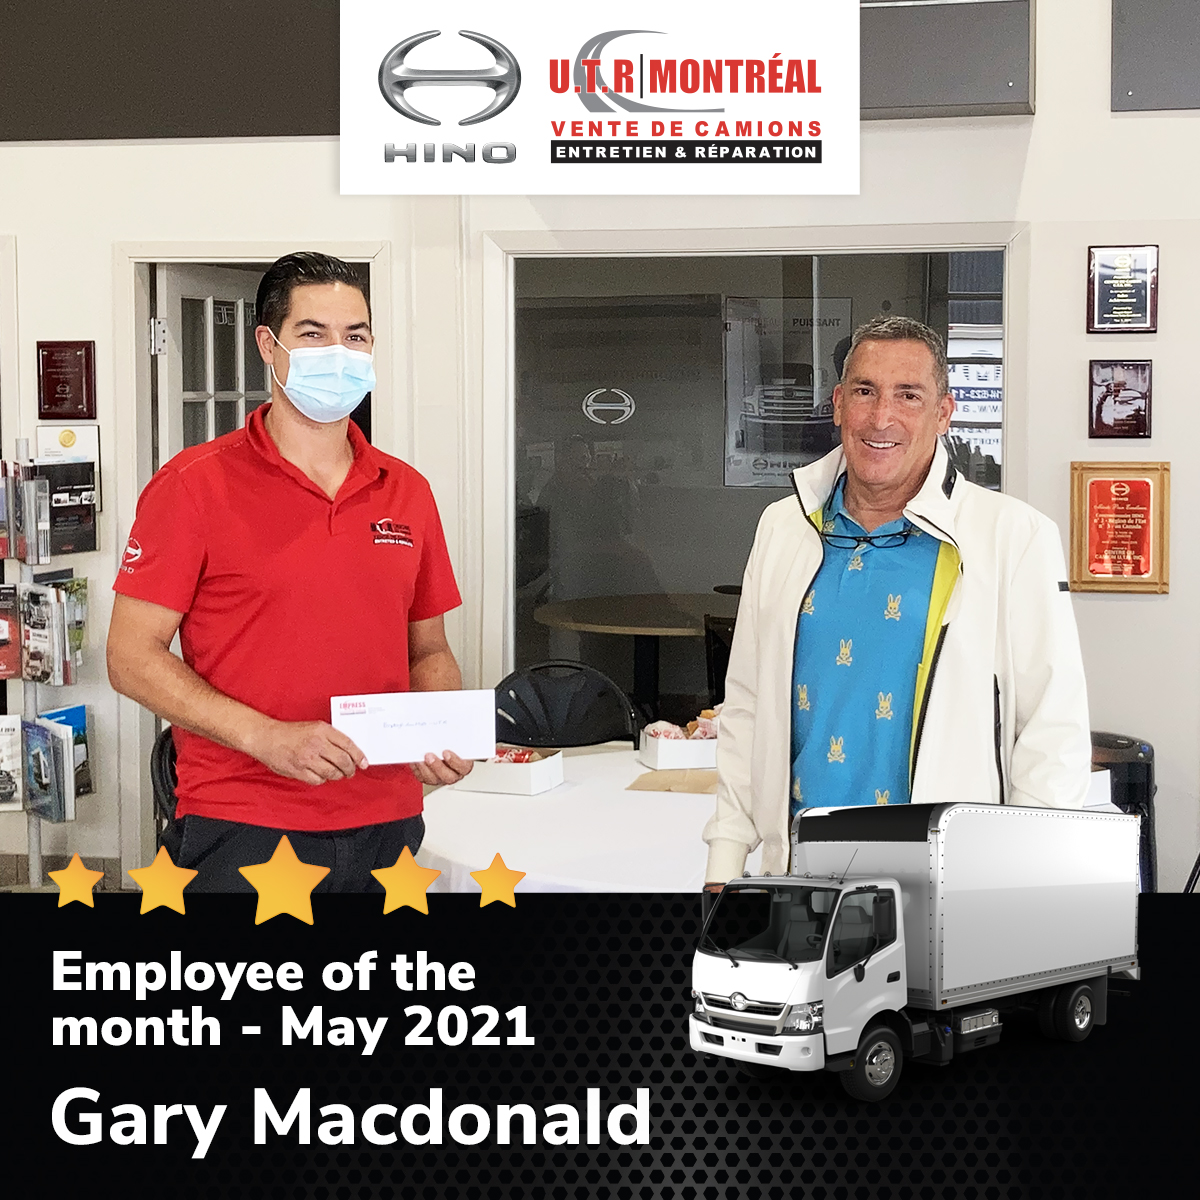 Employee of the month for May 2021